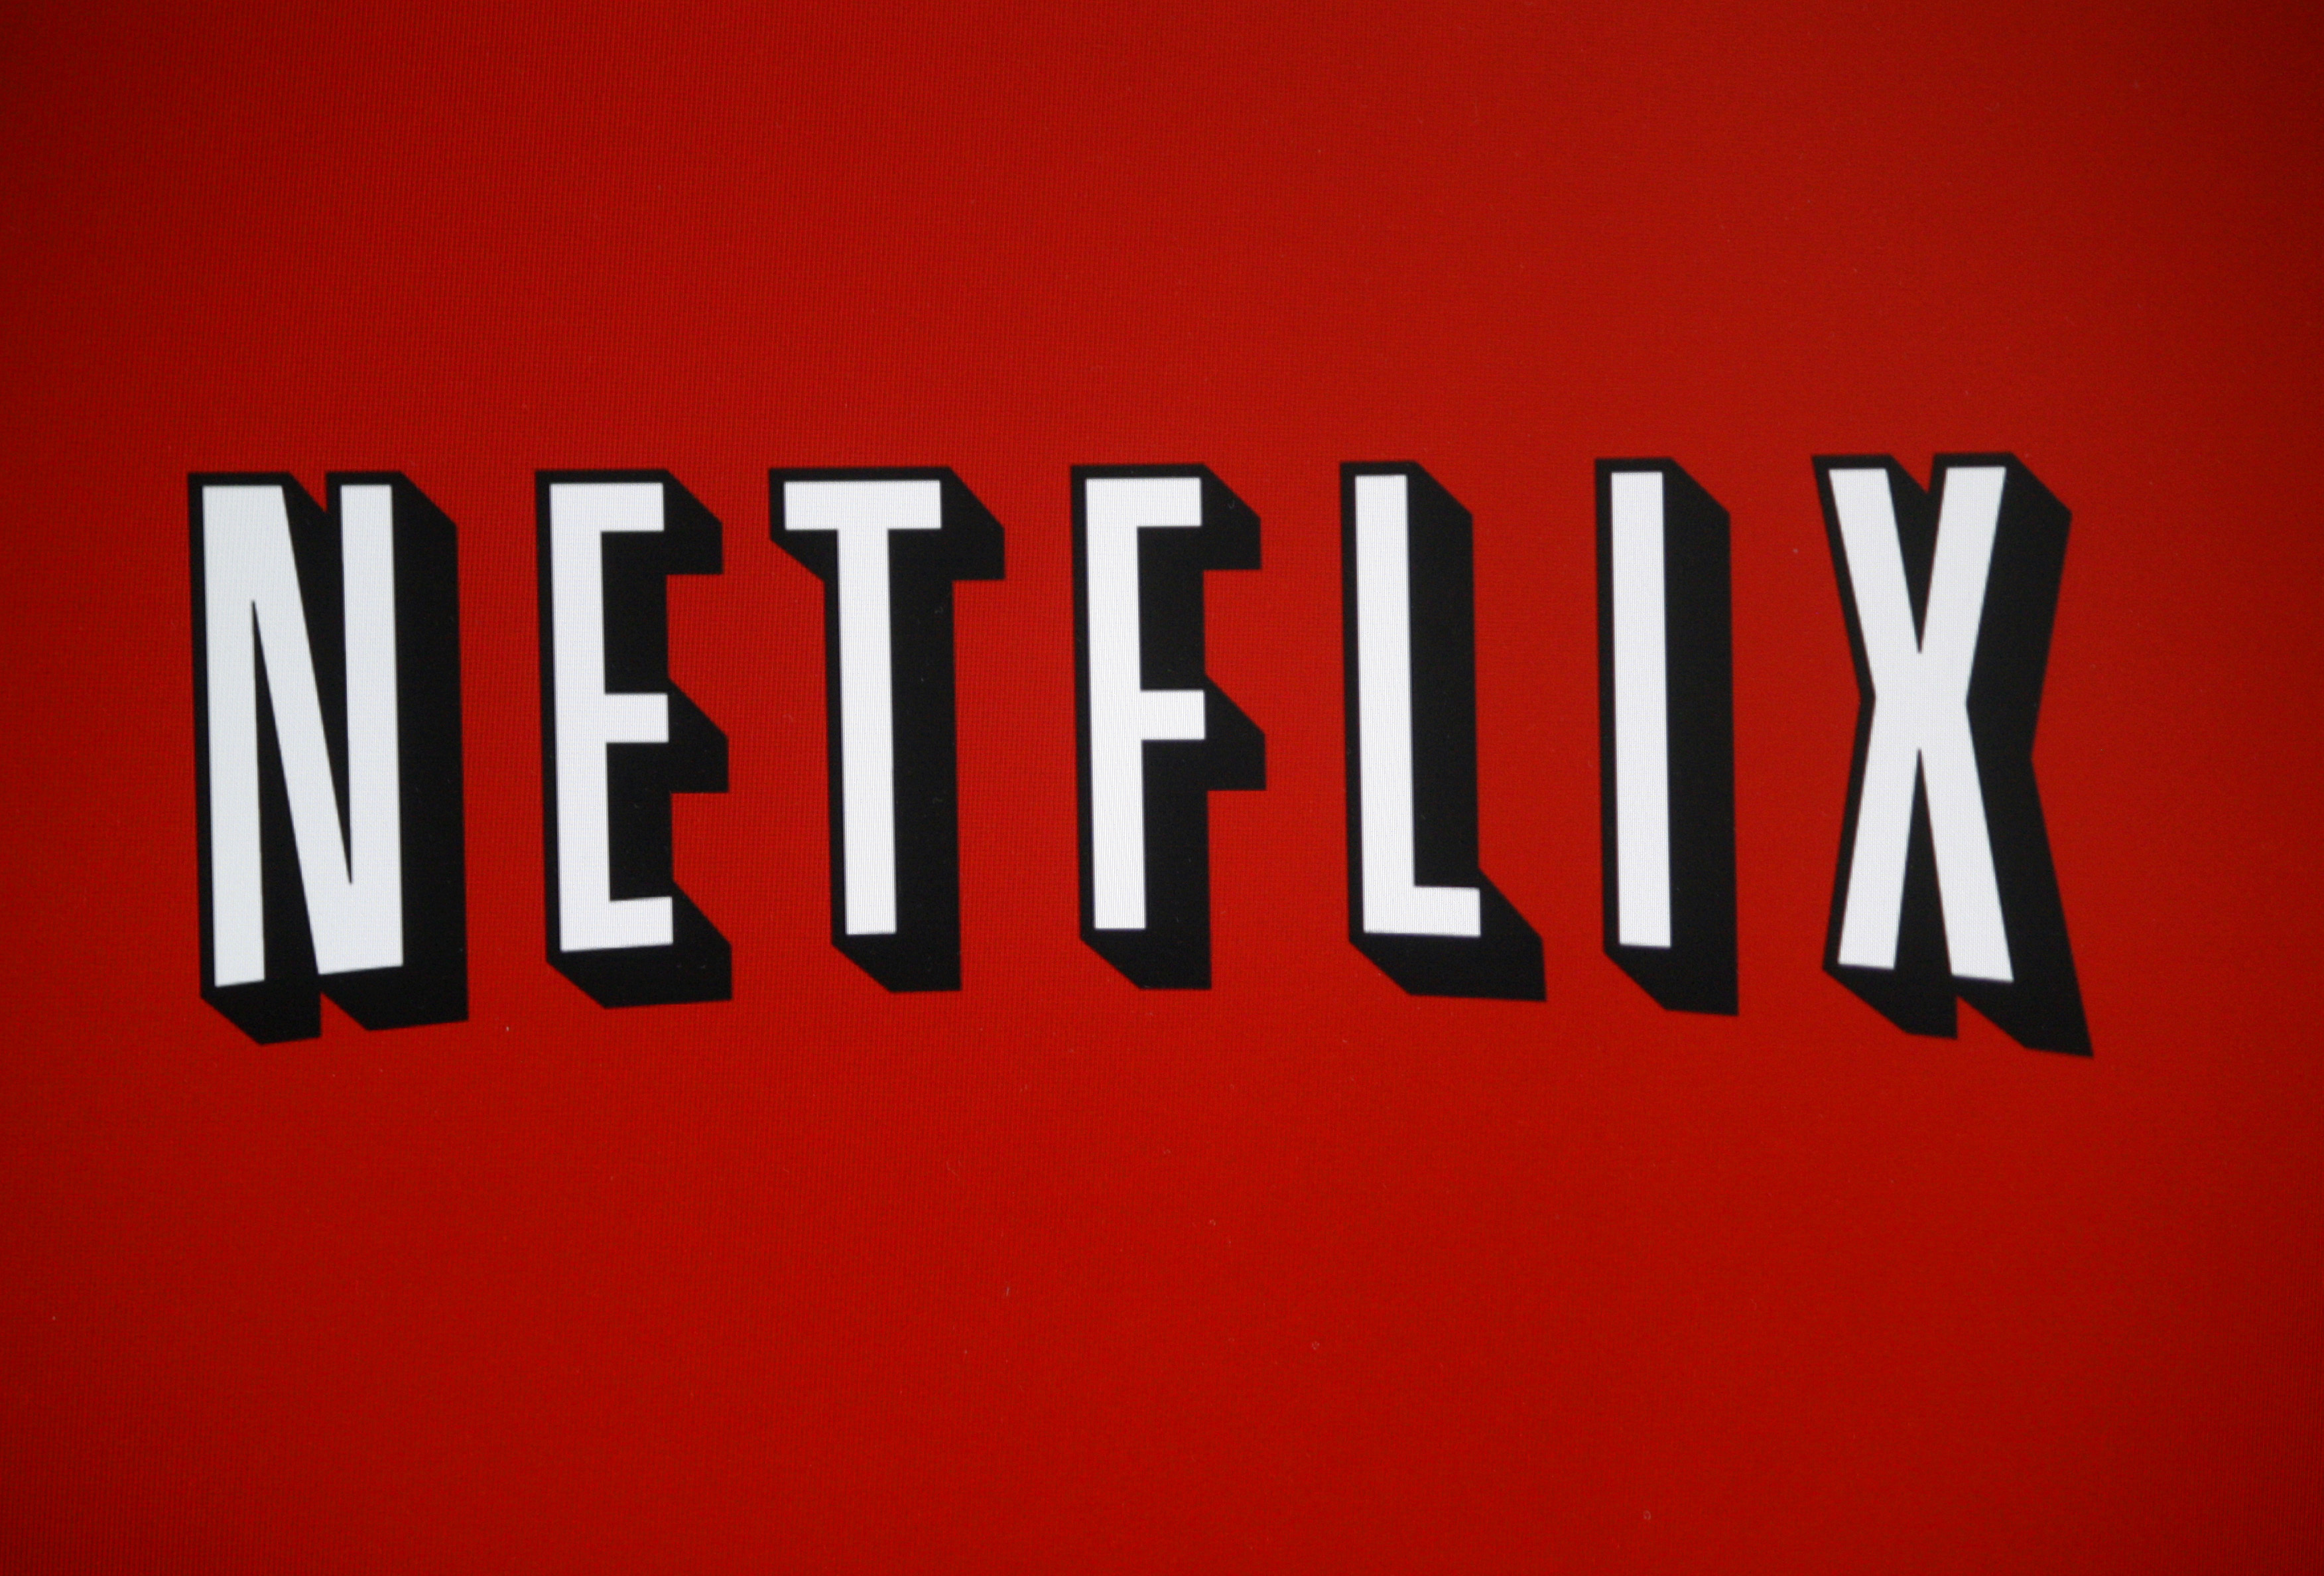 The Netflix Price Increase Has Arrived Heres What You Need To Know To Keep Binging